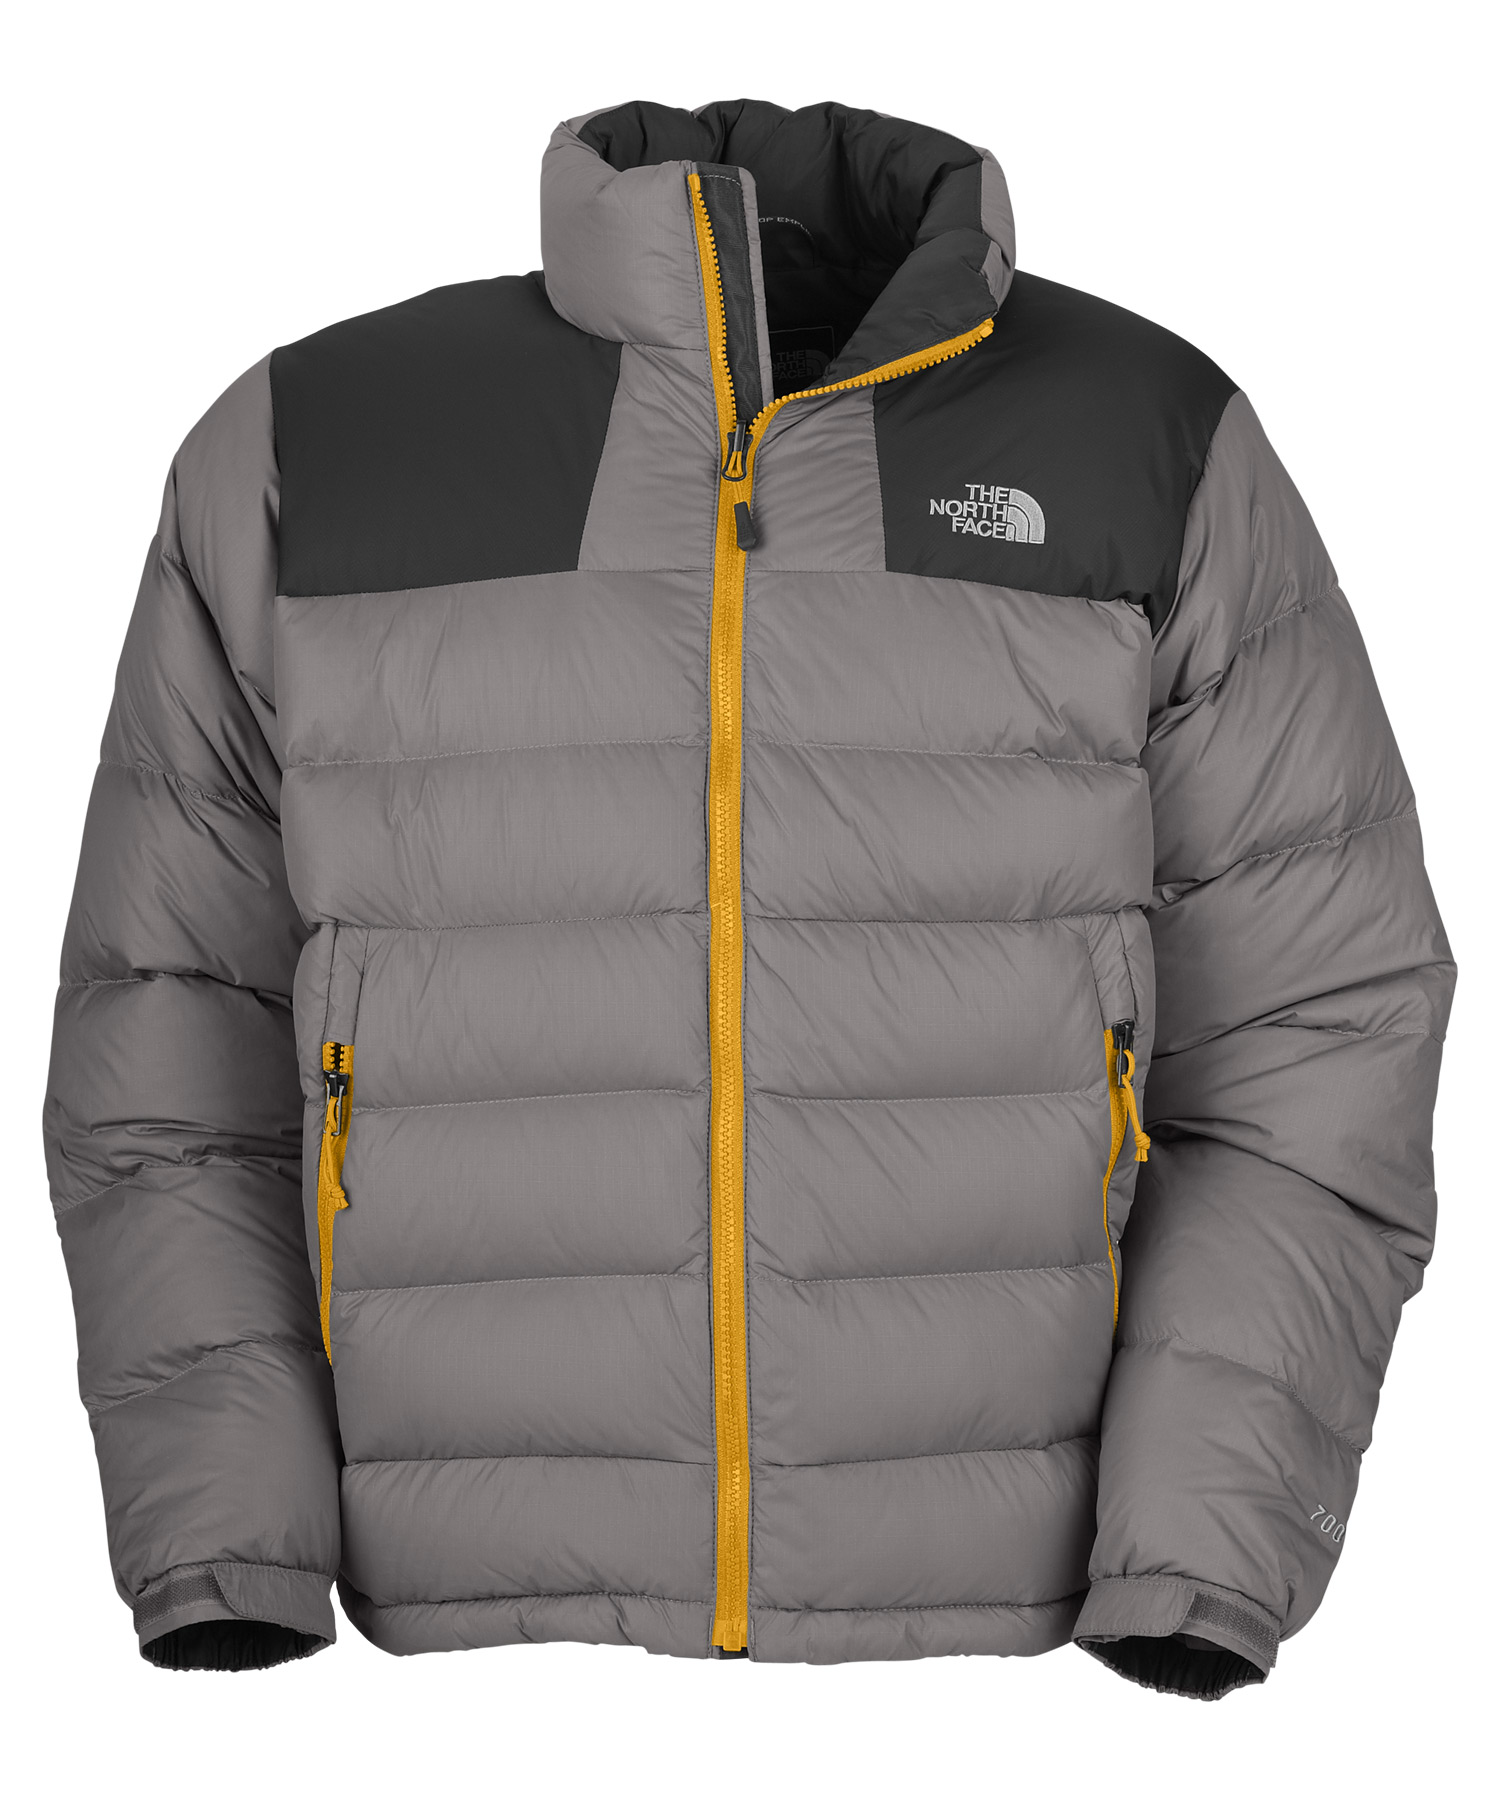 d1430e78e The North Face Massif Down Jacket Men's at NorwaySports.com Archive